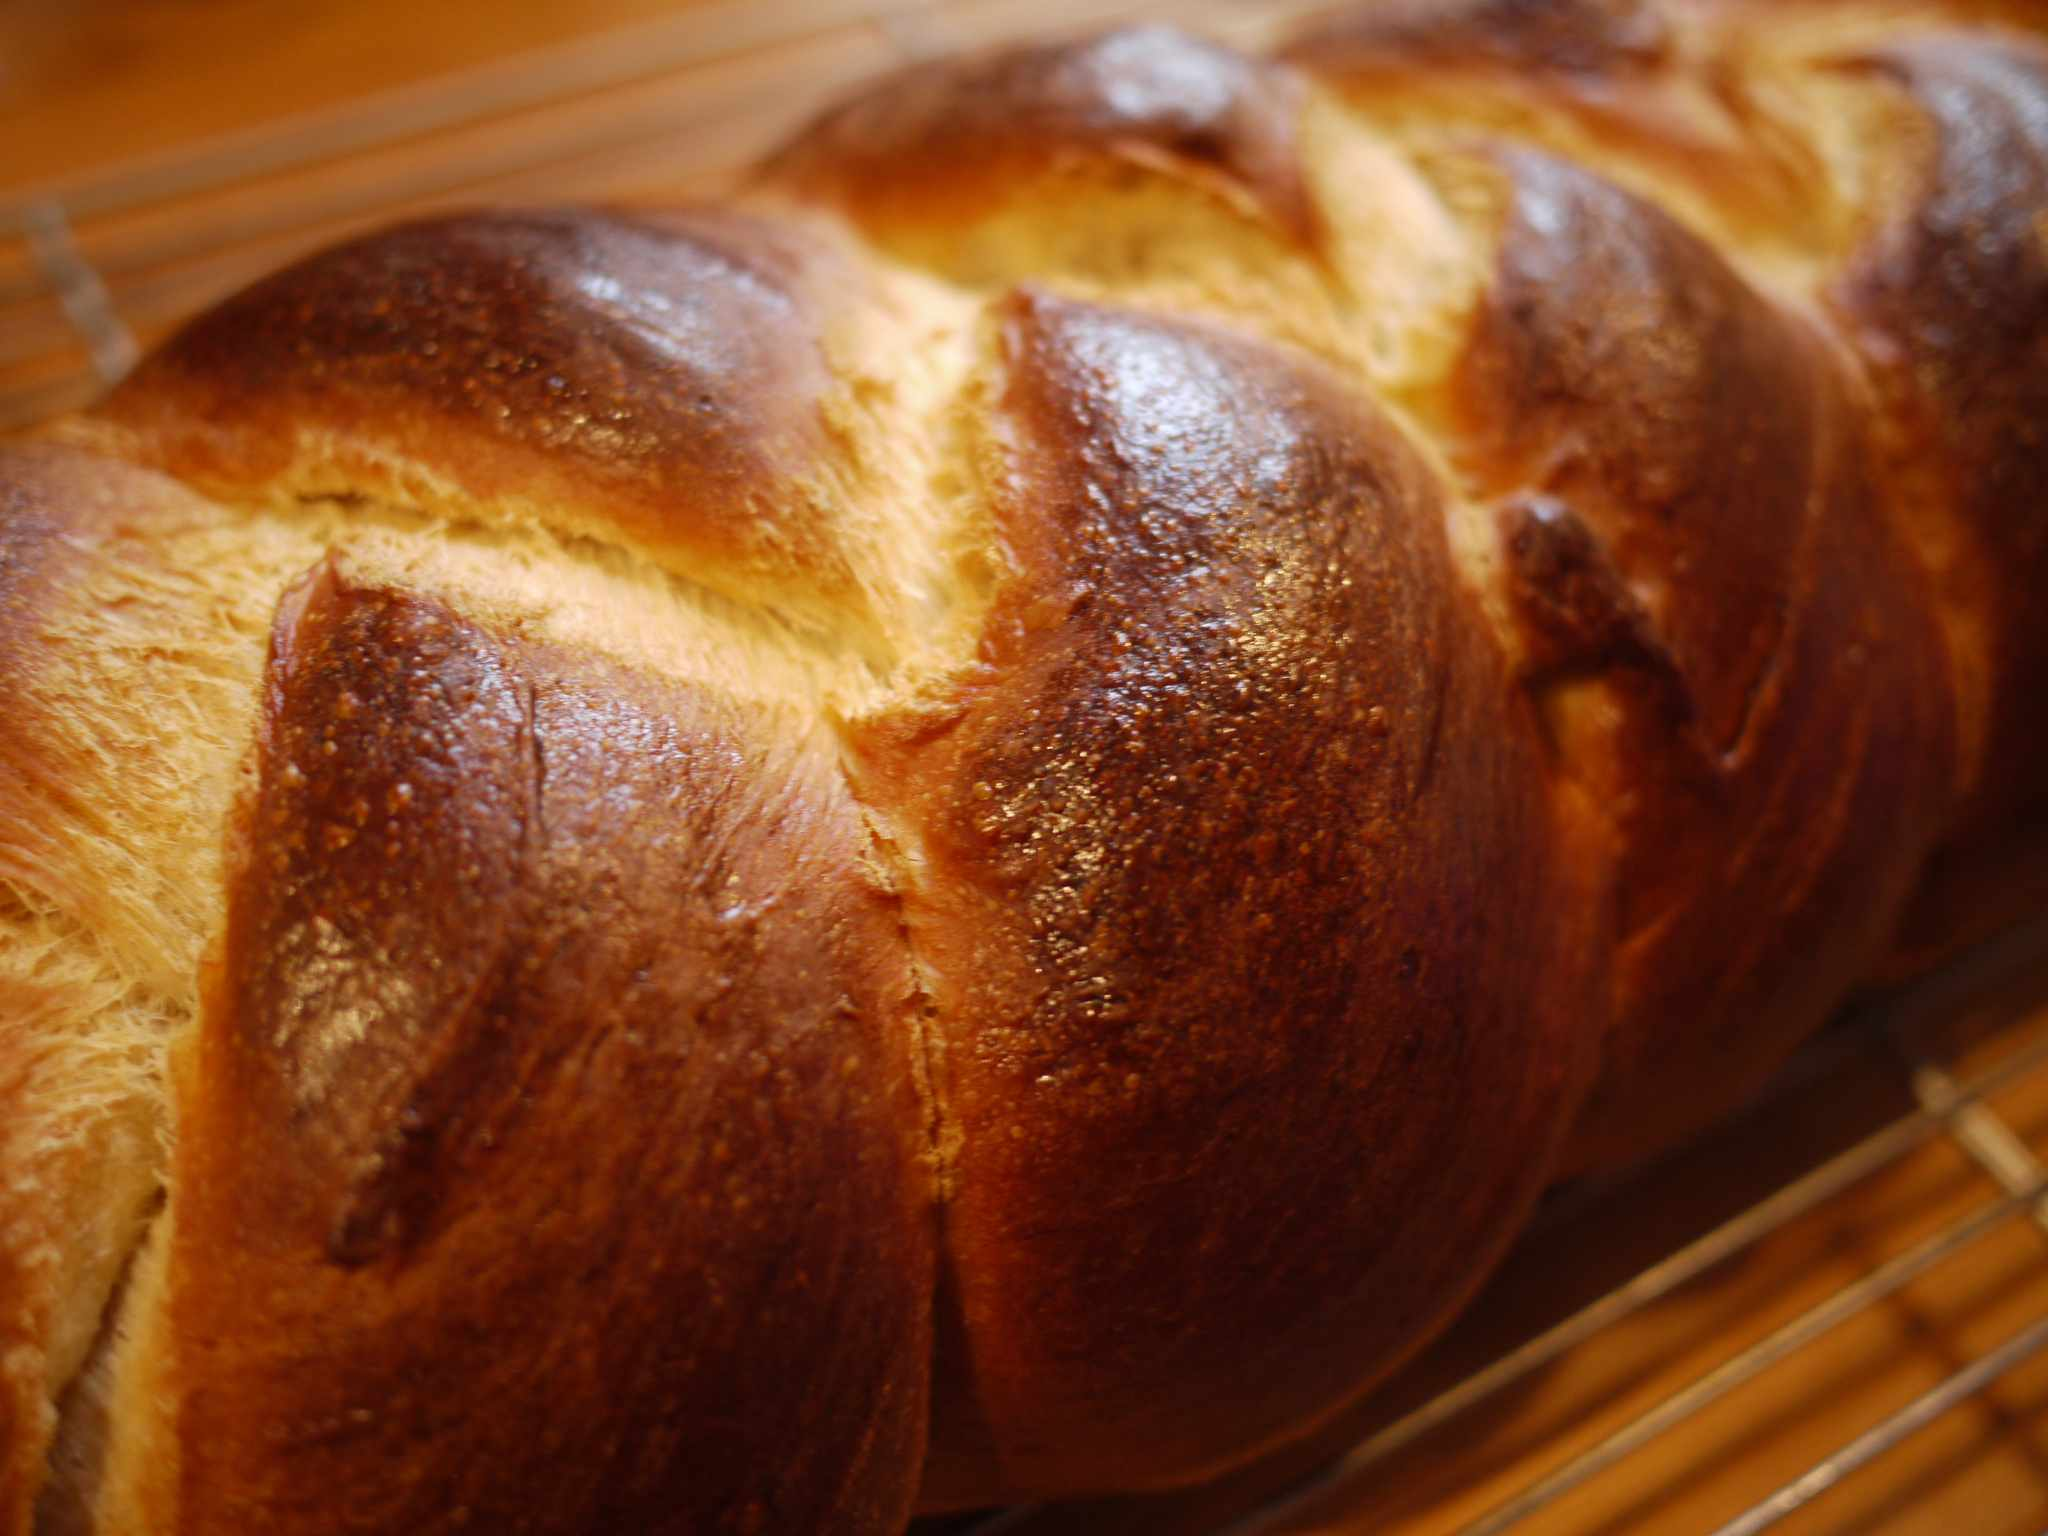 A closeup of challah bread